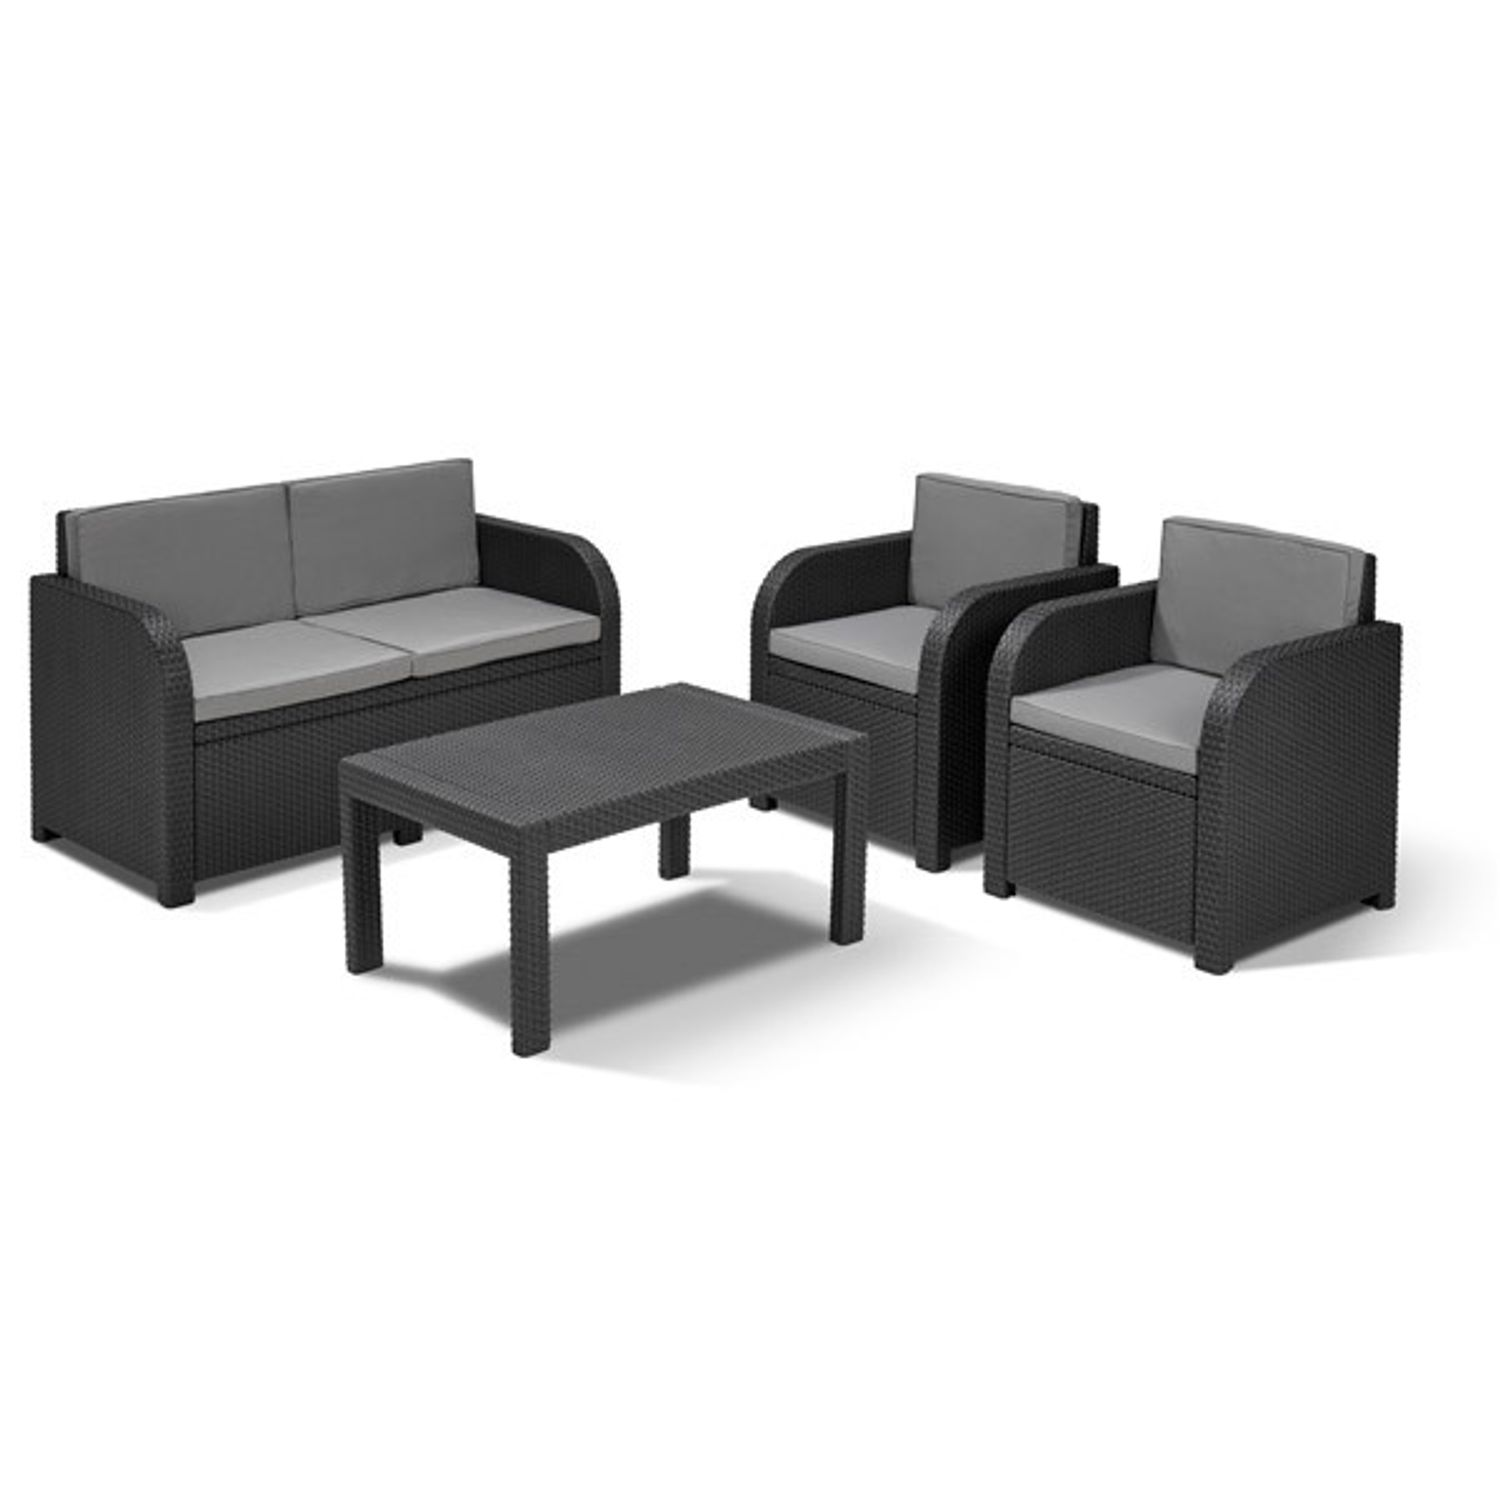 allibert lounge sitzgruppe mississippi graphit rattan gartenm bel balkonm bel garten m bel. Black Bedroom Furniture Sets. Home Design Ideas